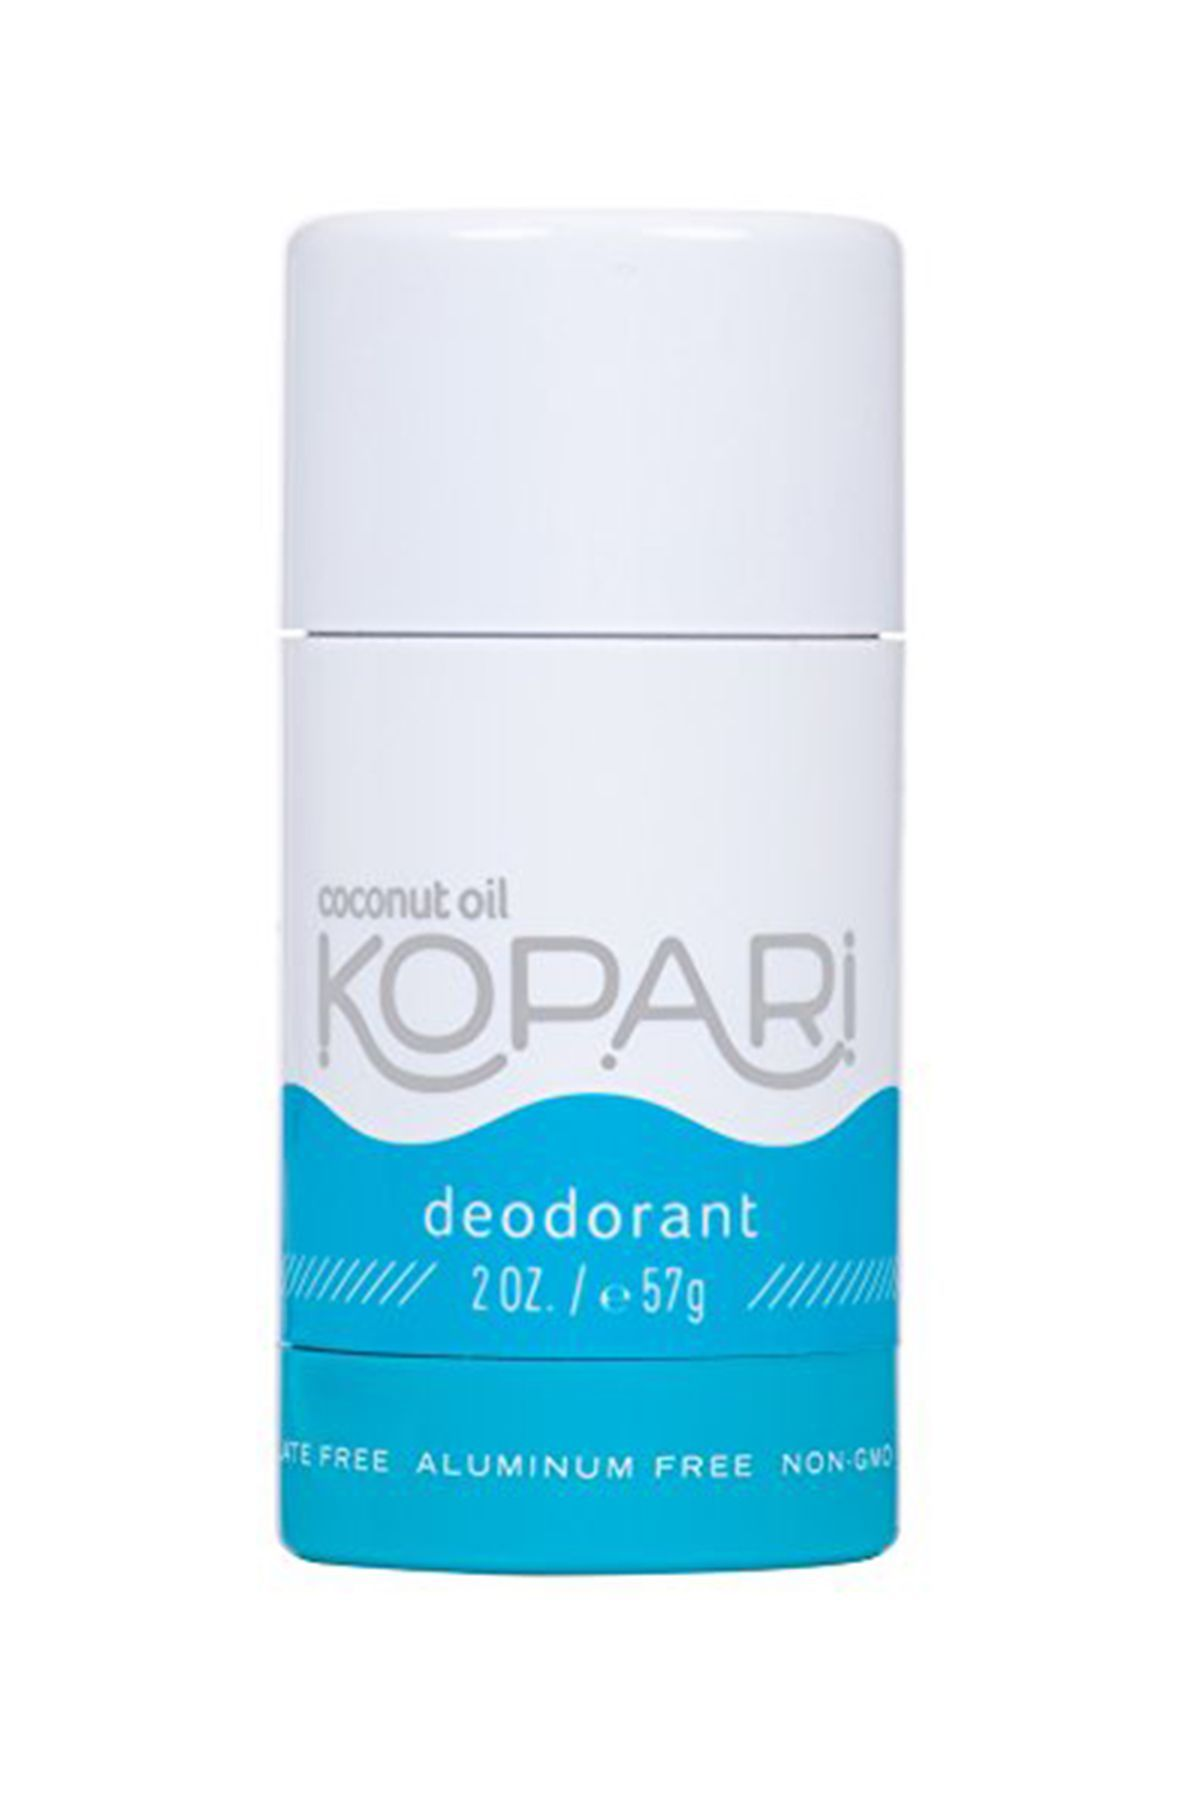 6 Best Natural Deodorants for Women - All Natural Deodorants That Work 2019